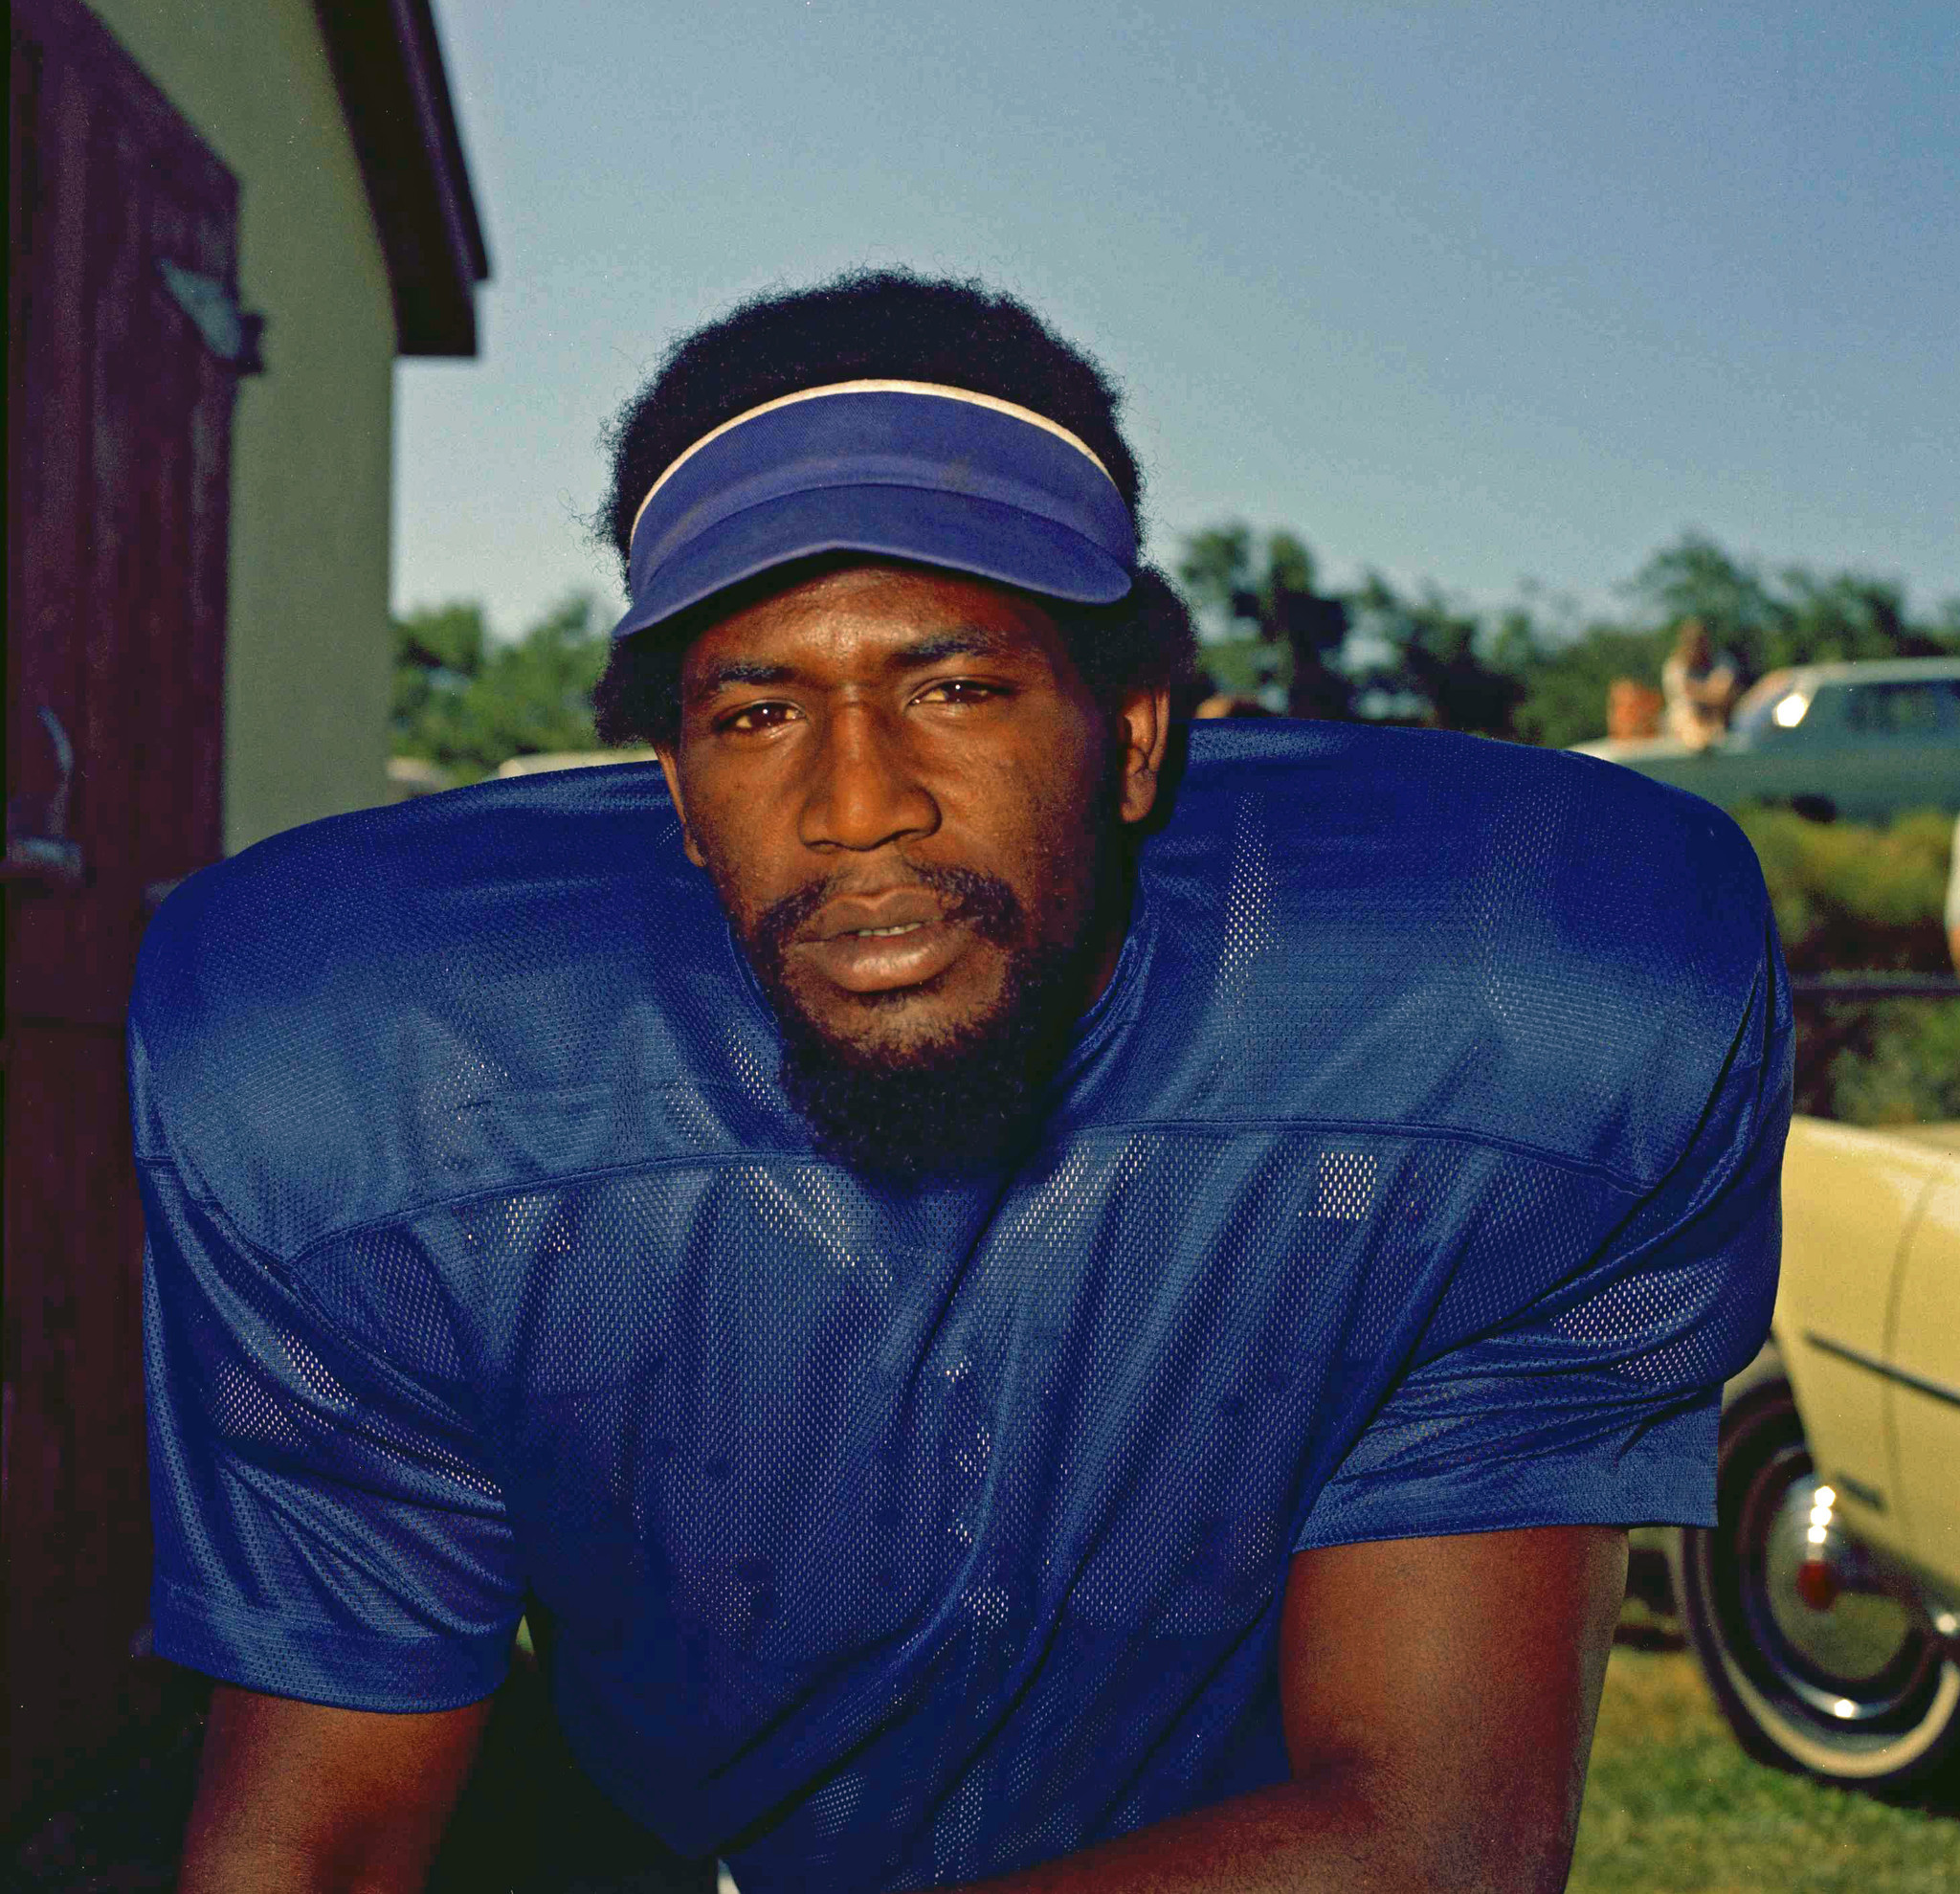 Ct Pick 3 >> Concussion group says ex-NFL player Bubba Smith had CTE ...